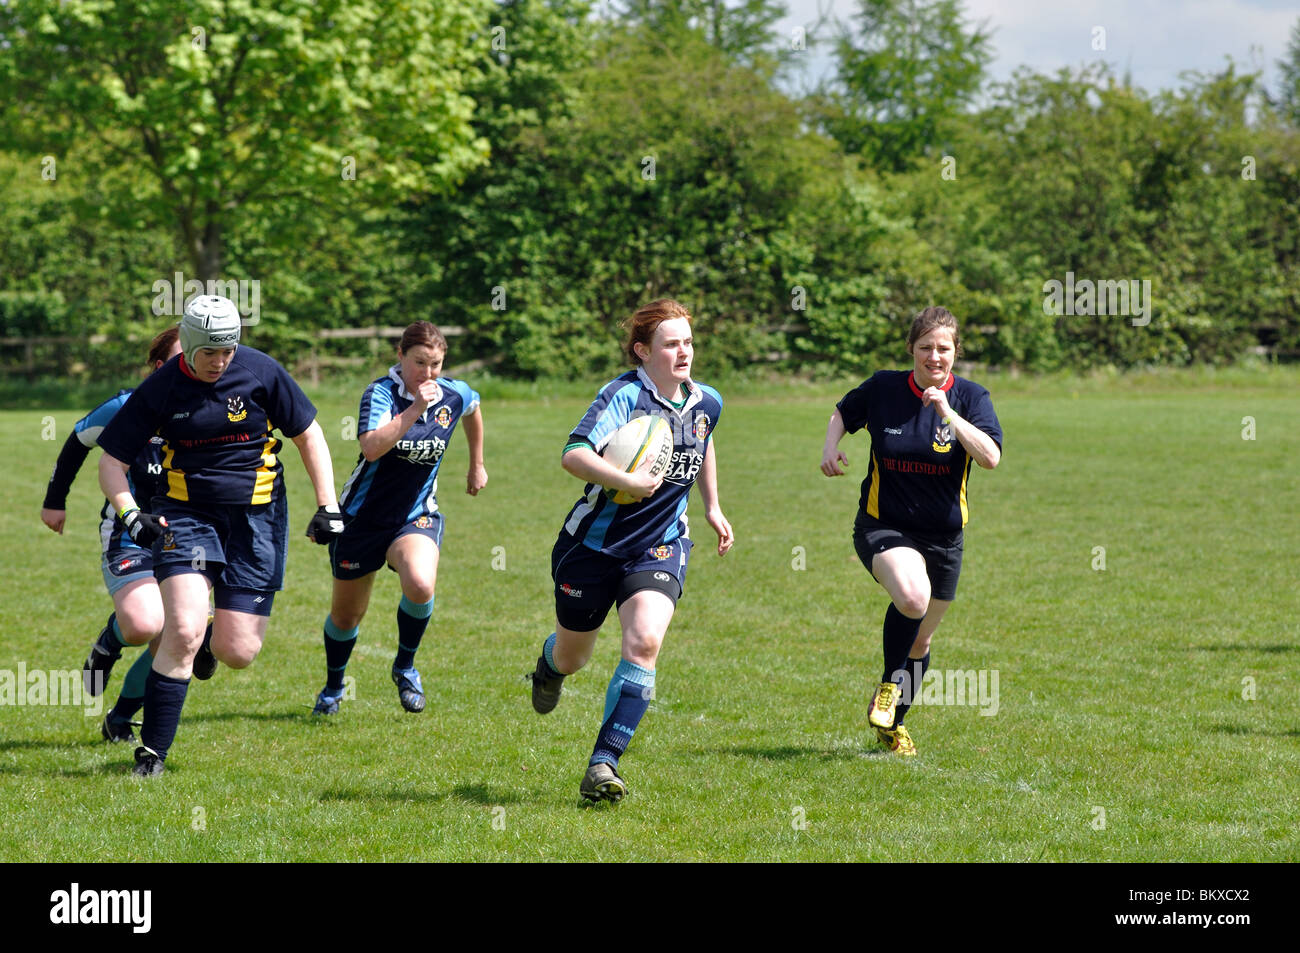 Women`s Rugby Union - Stock Image